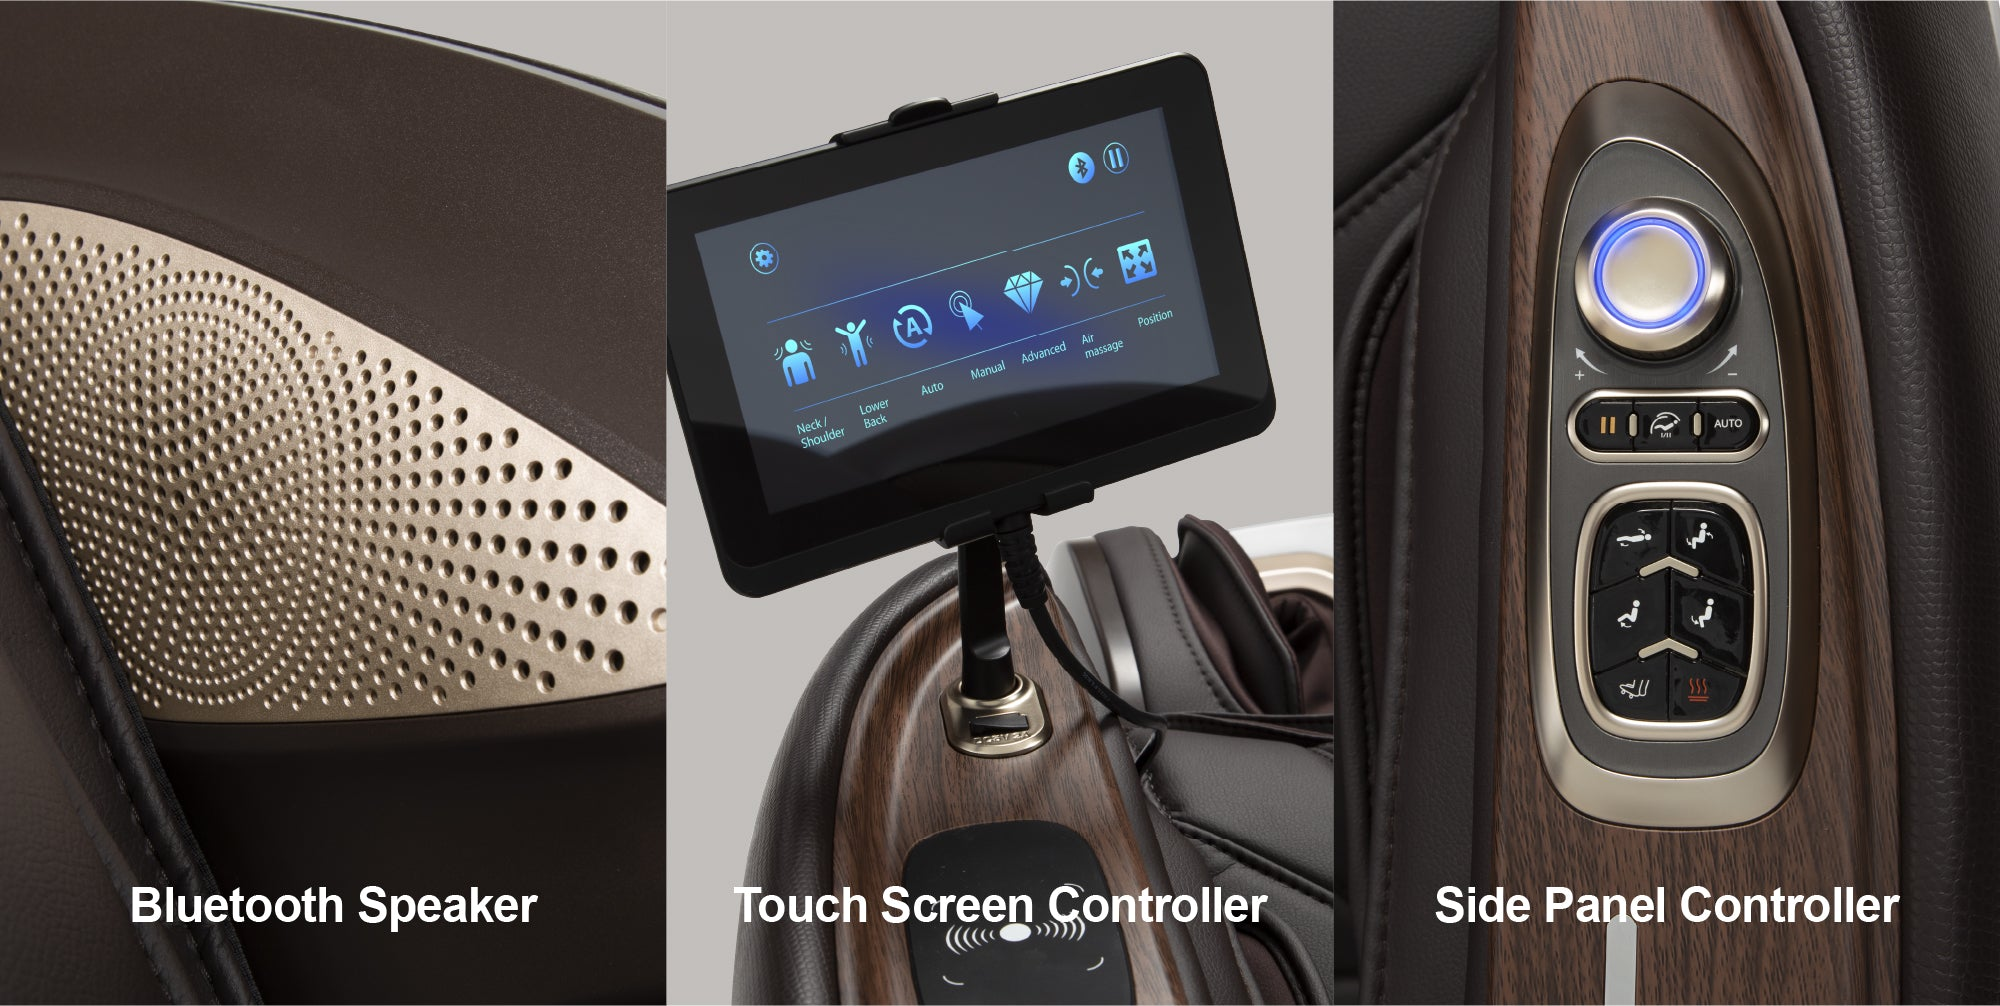 Bluetooth Speaker, Touch Screen Controller, Side Panel Controller